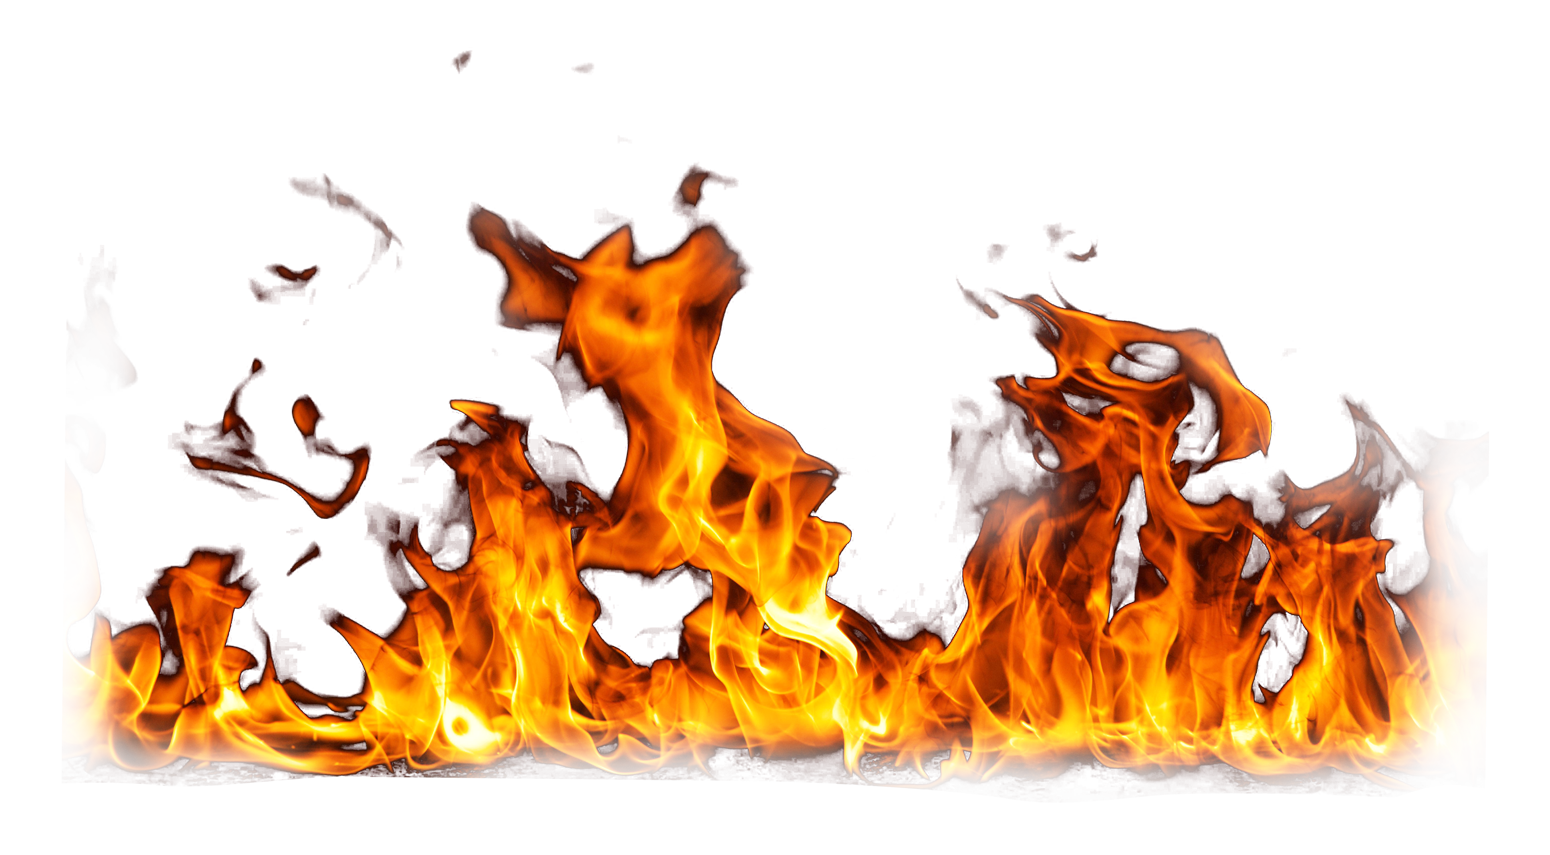 Fire Png Image Download Clipart - 6800 - TransparentPNG clipart black and white library